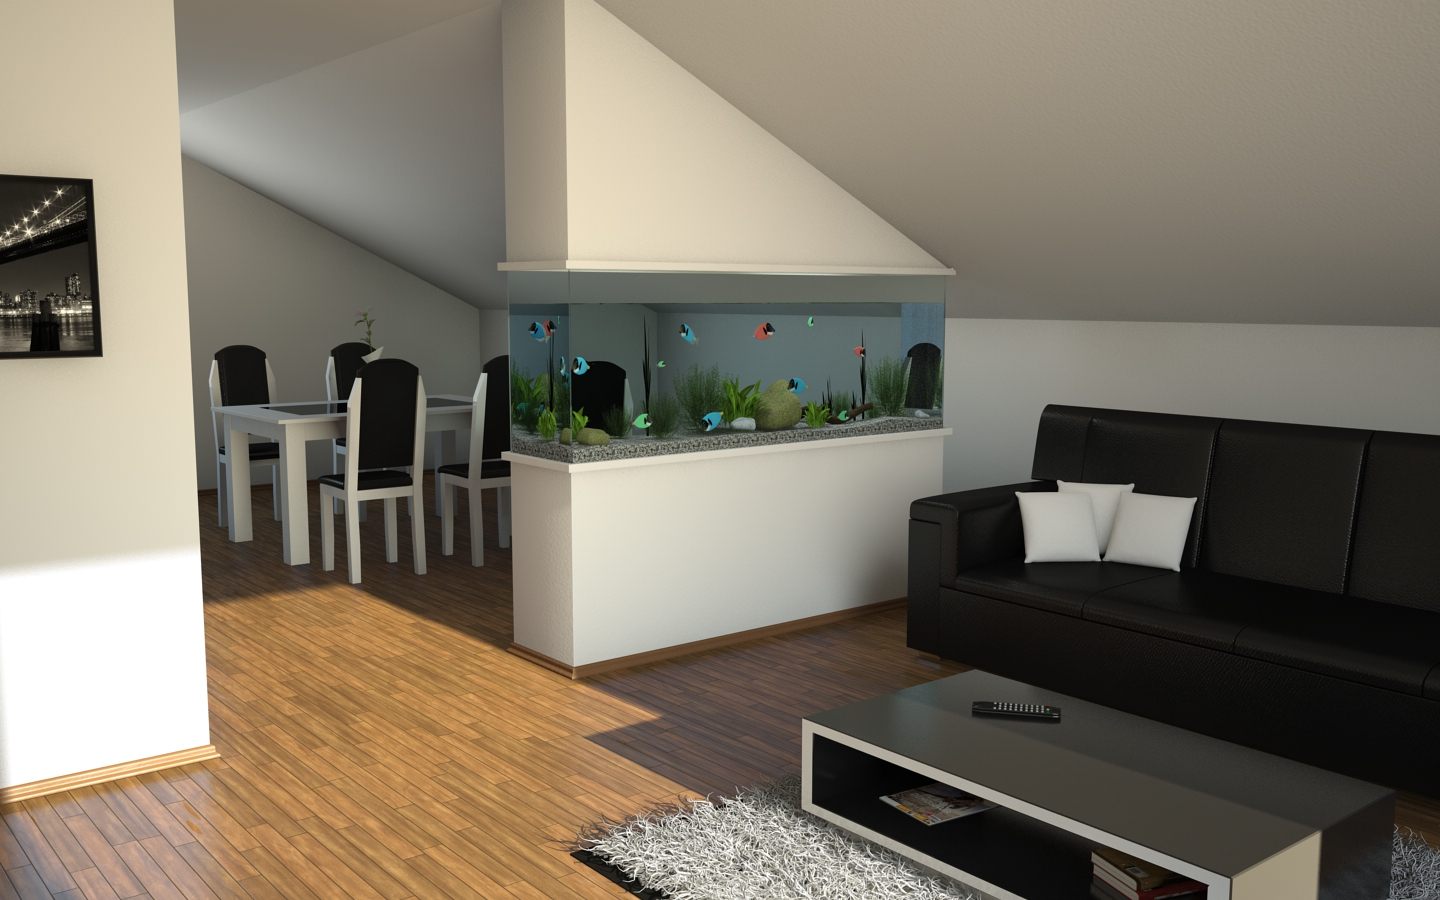 living room aquarium by slographic on deviantart. Black Bedroom Furniture Sets. Home Design Ideas